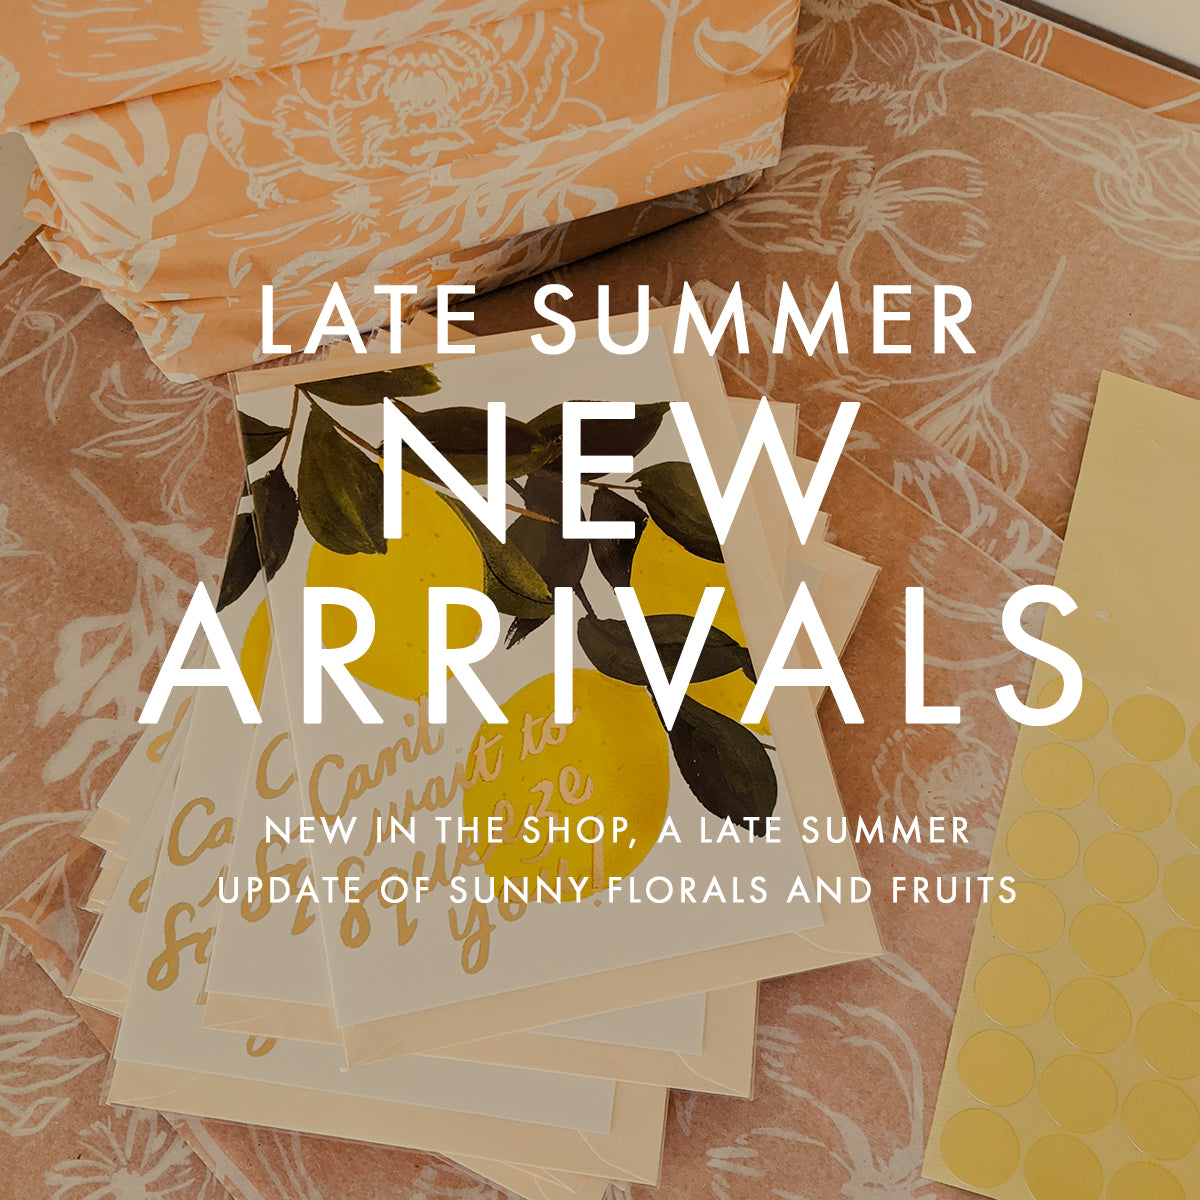 19 New Arrivals for Late Summer